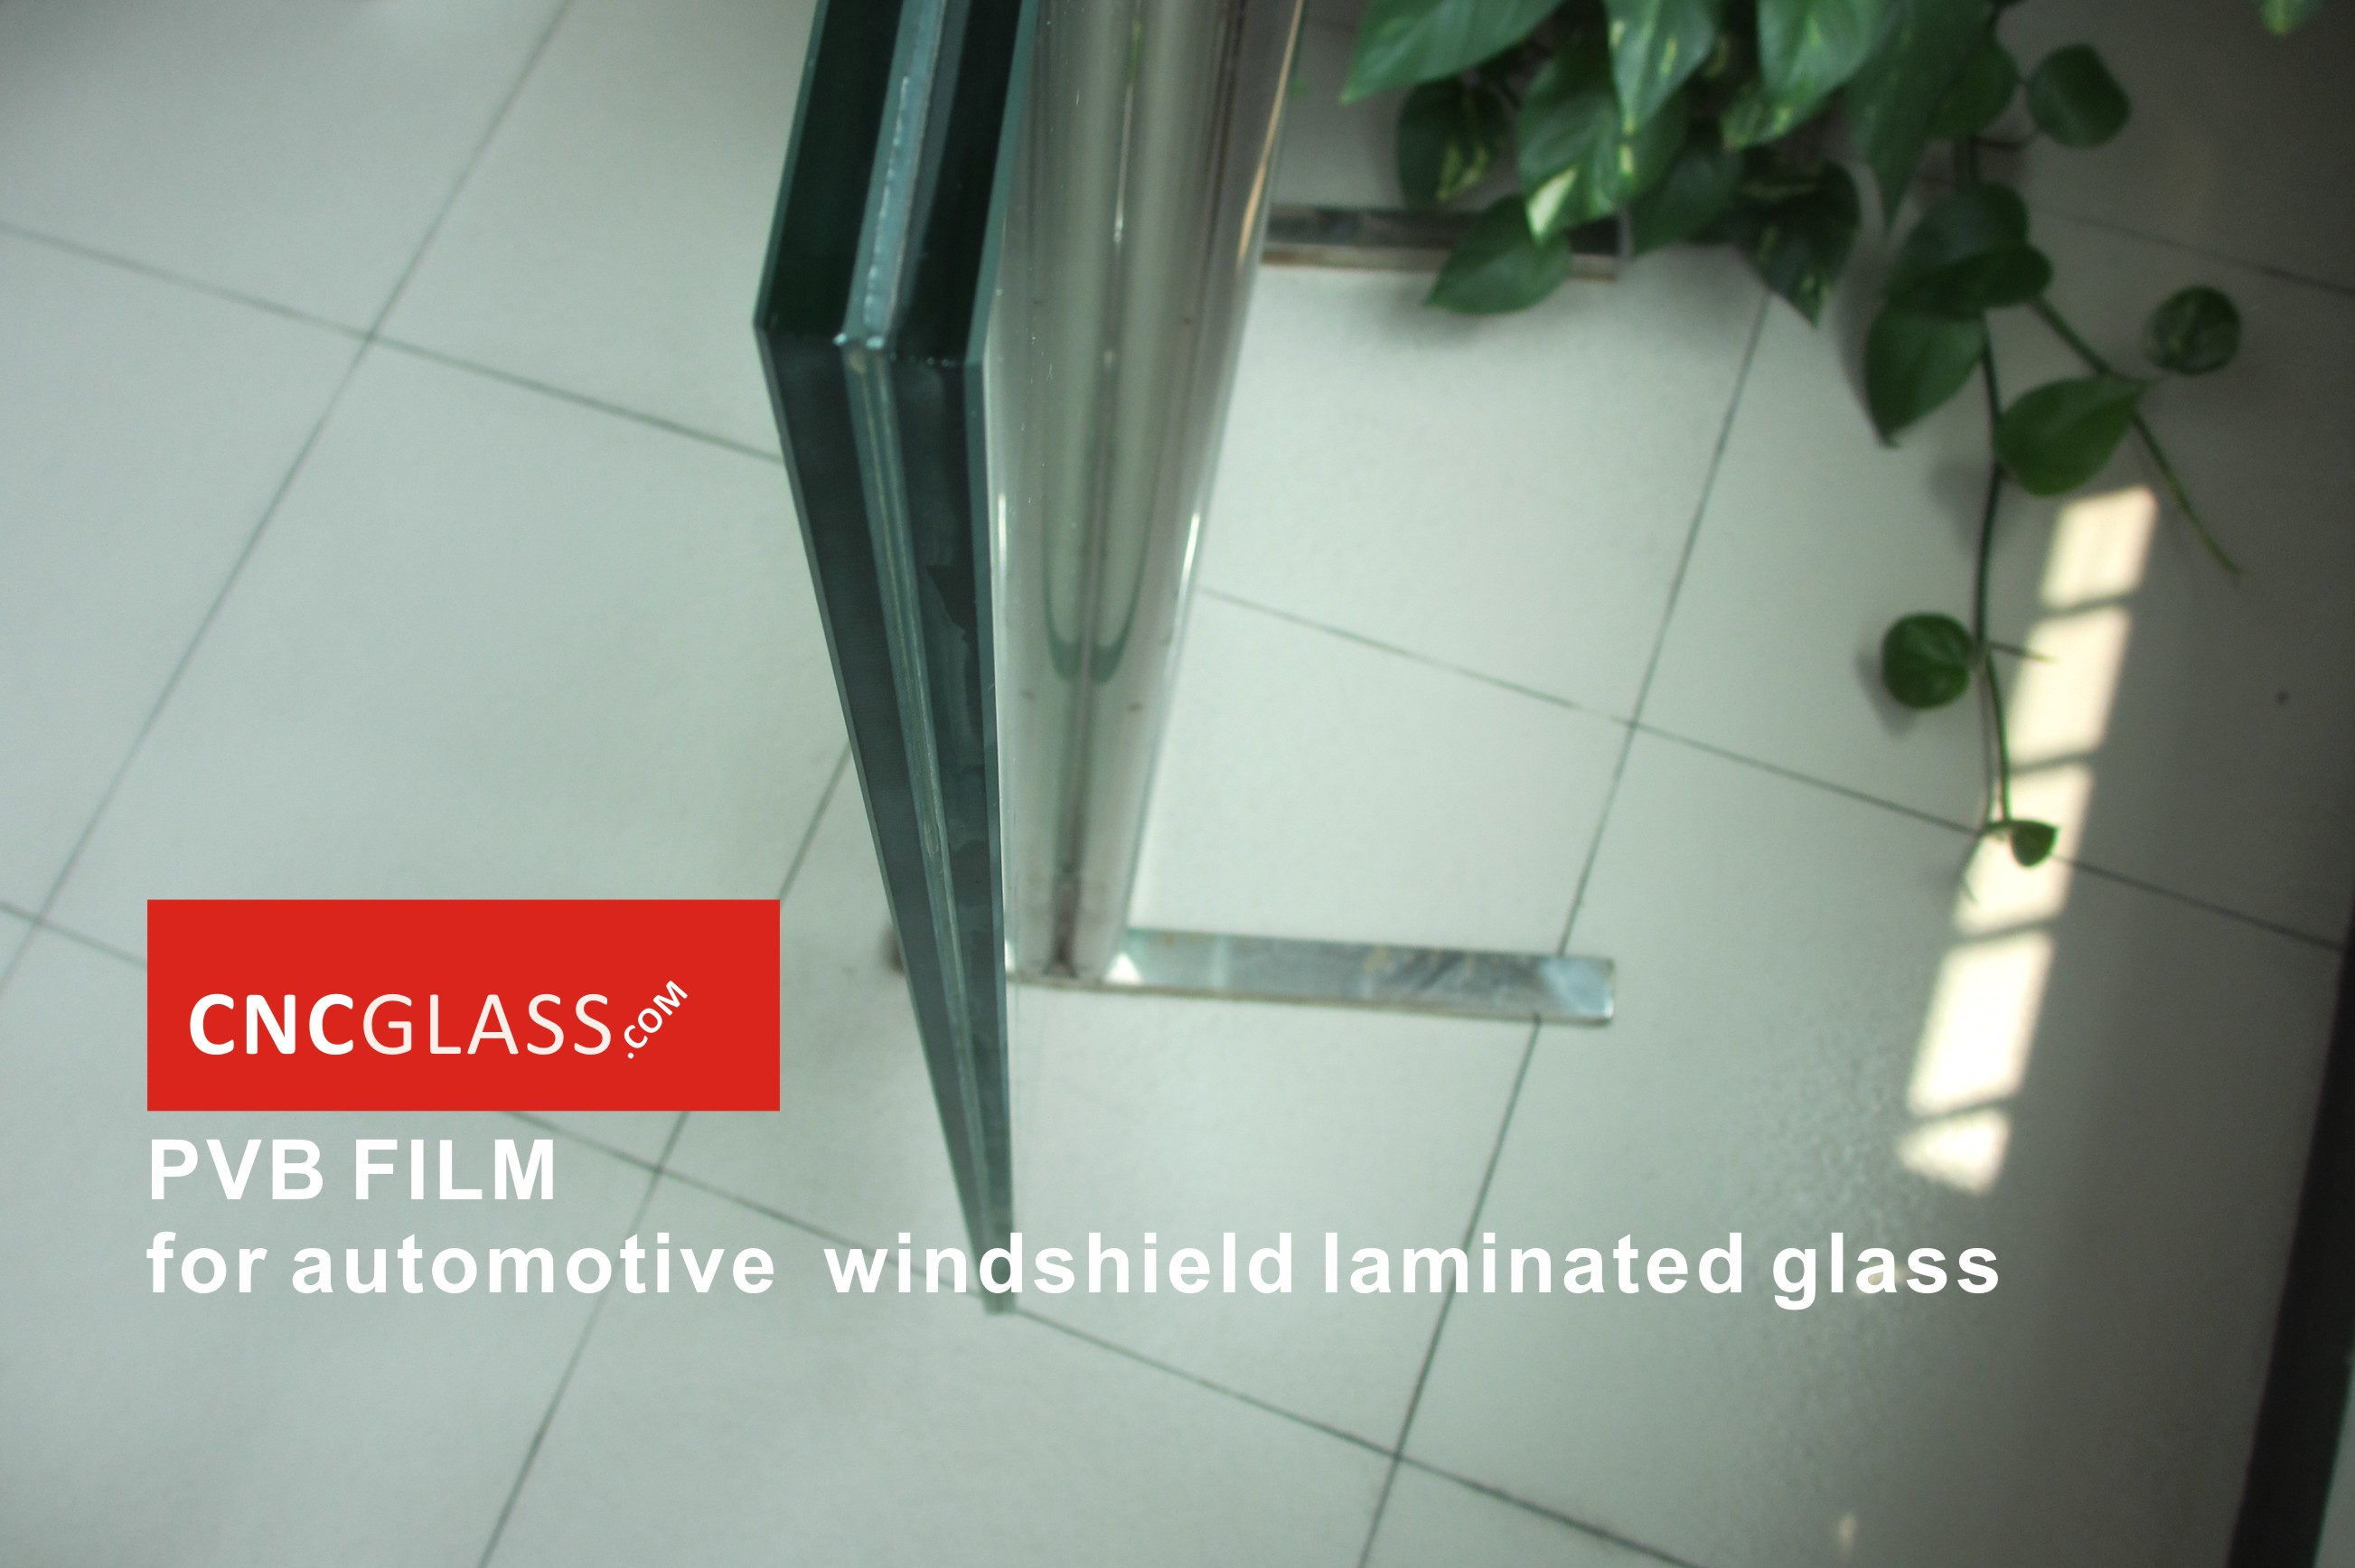 PVB FILM for automotive windshield laminated glass (4)